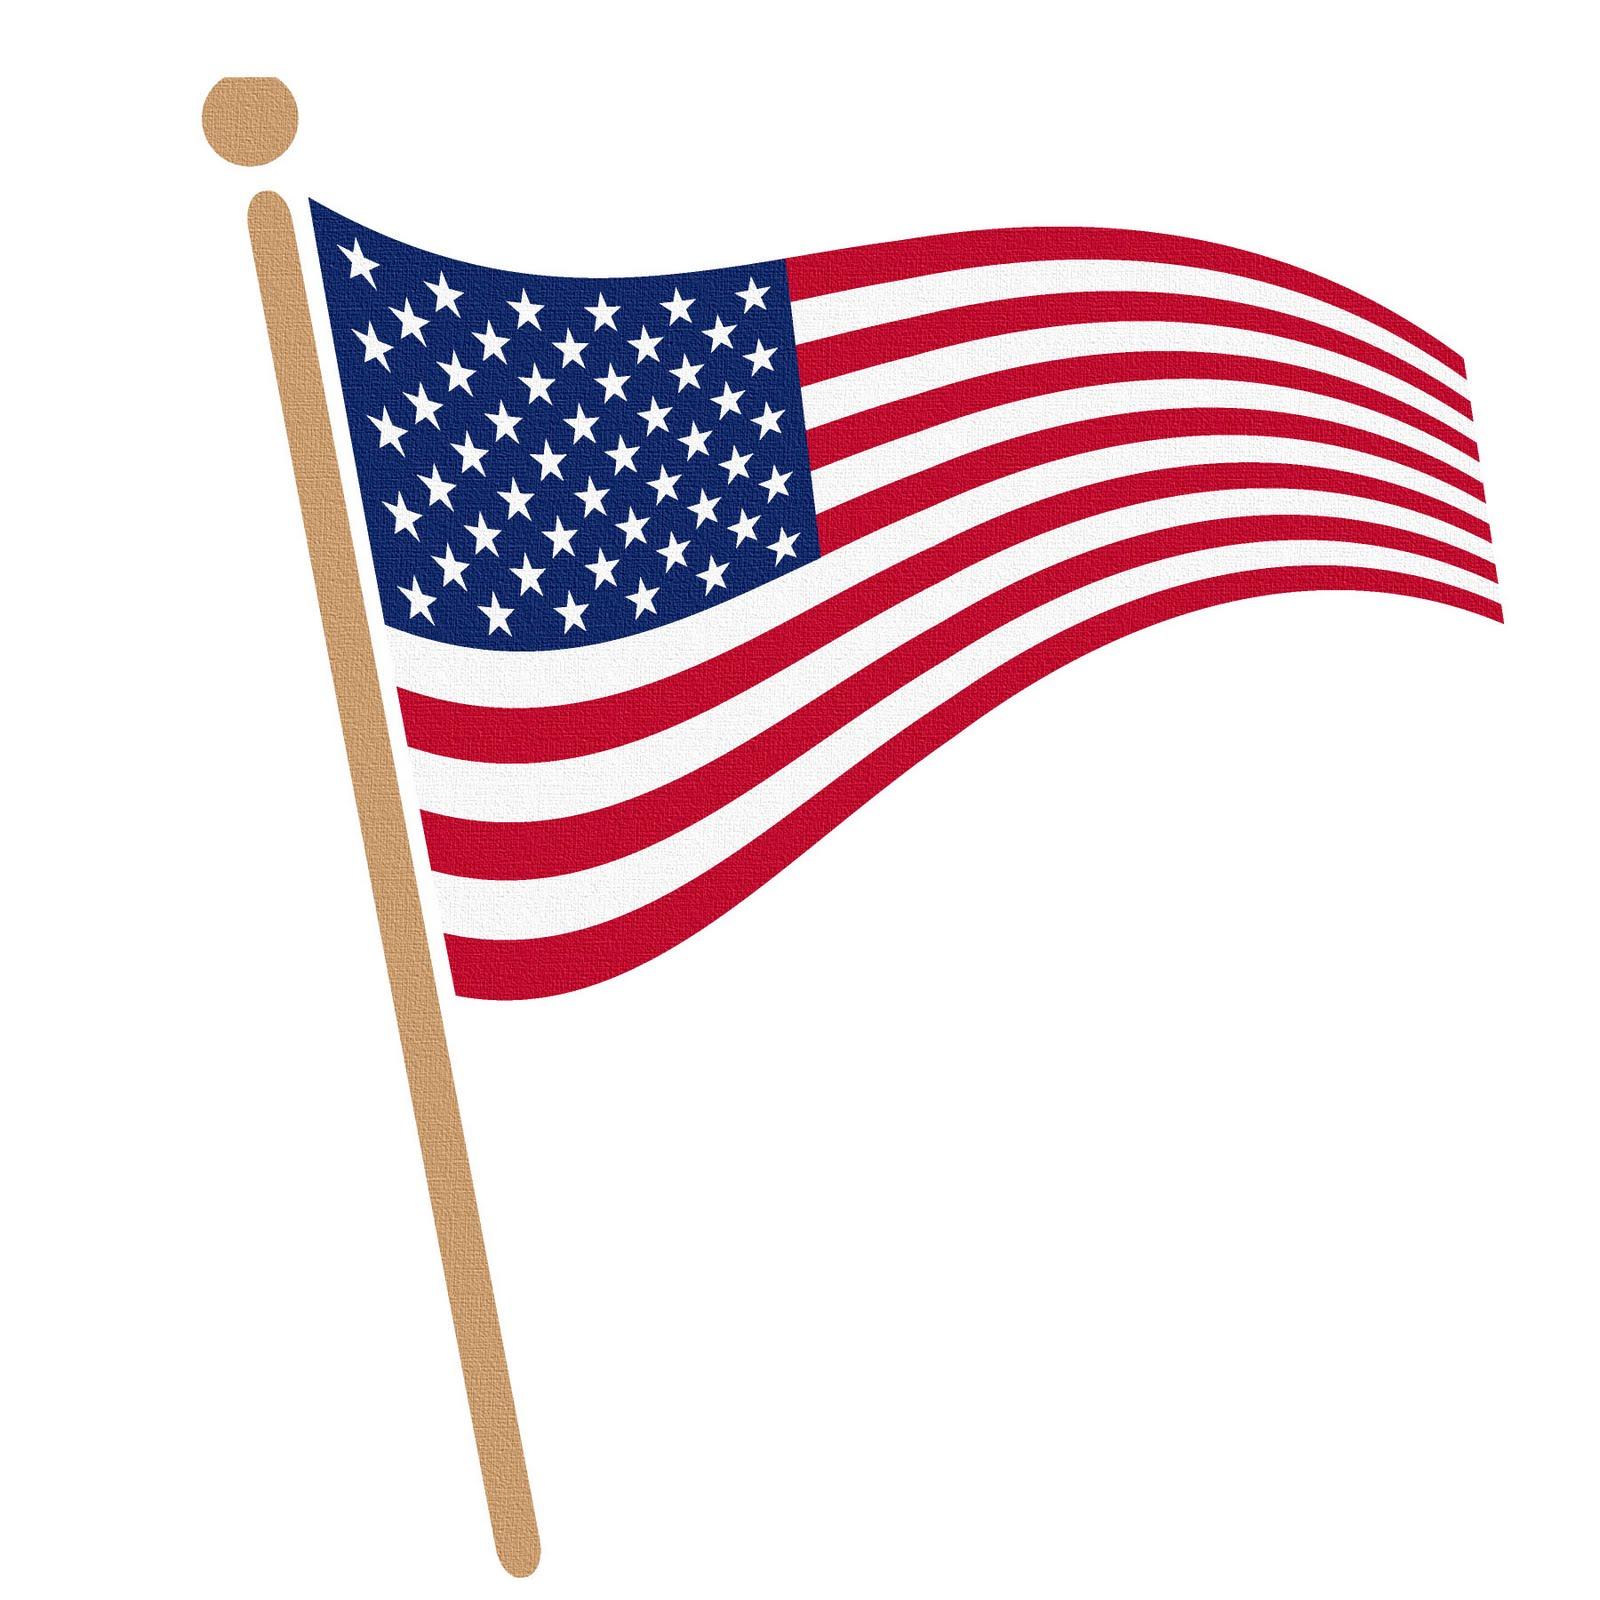 America clipart us flag Flags open Checkered  3